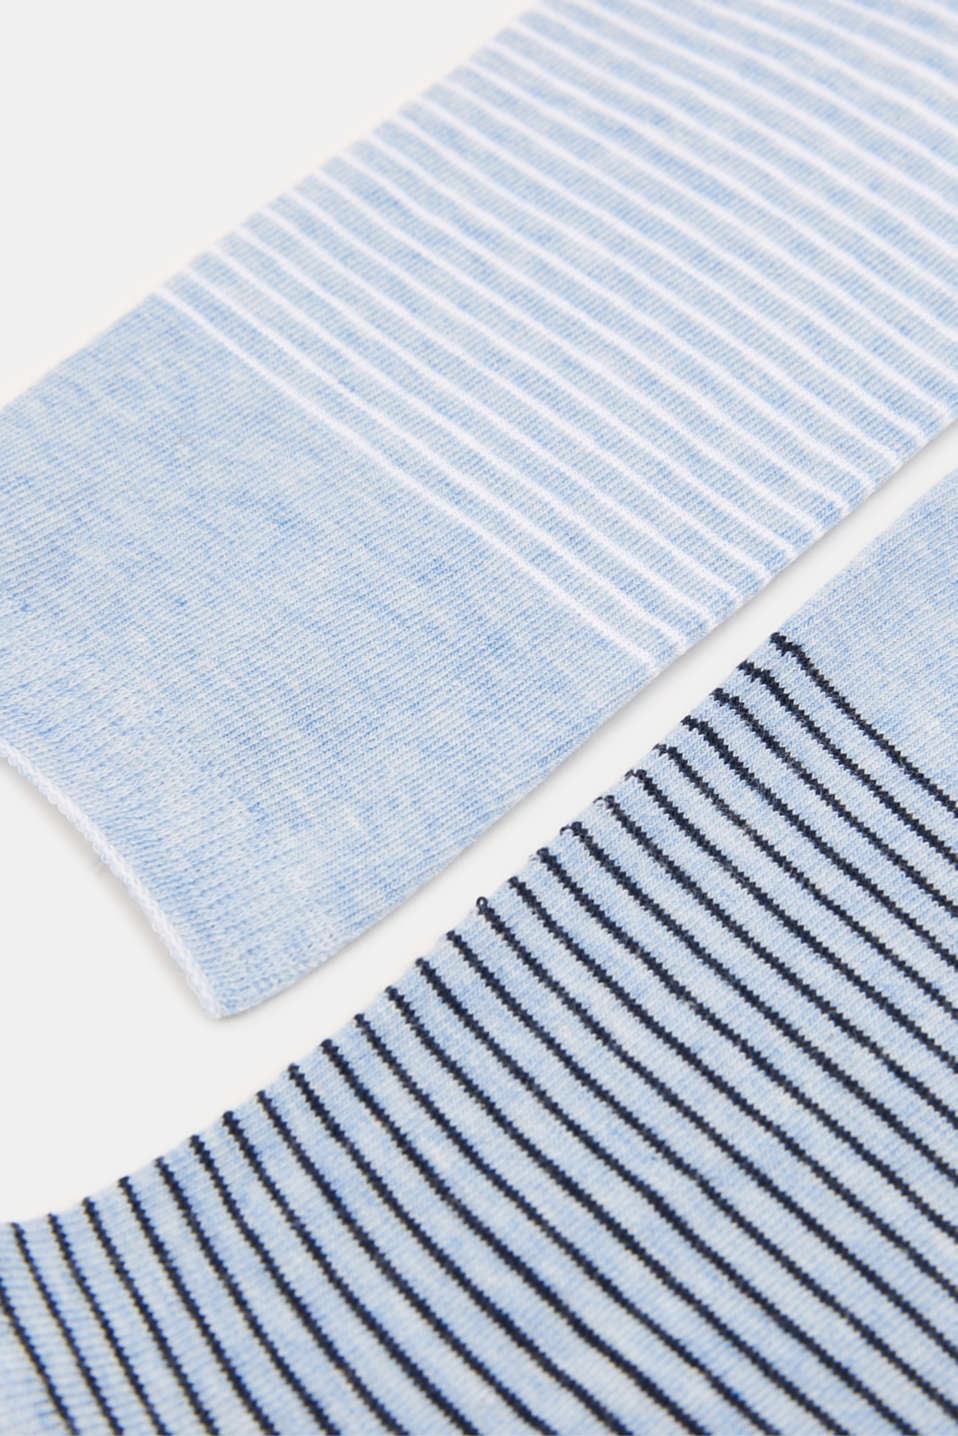 Double pack of socks with a striped look, JEANS, detail image number 1